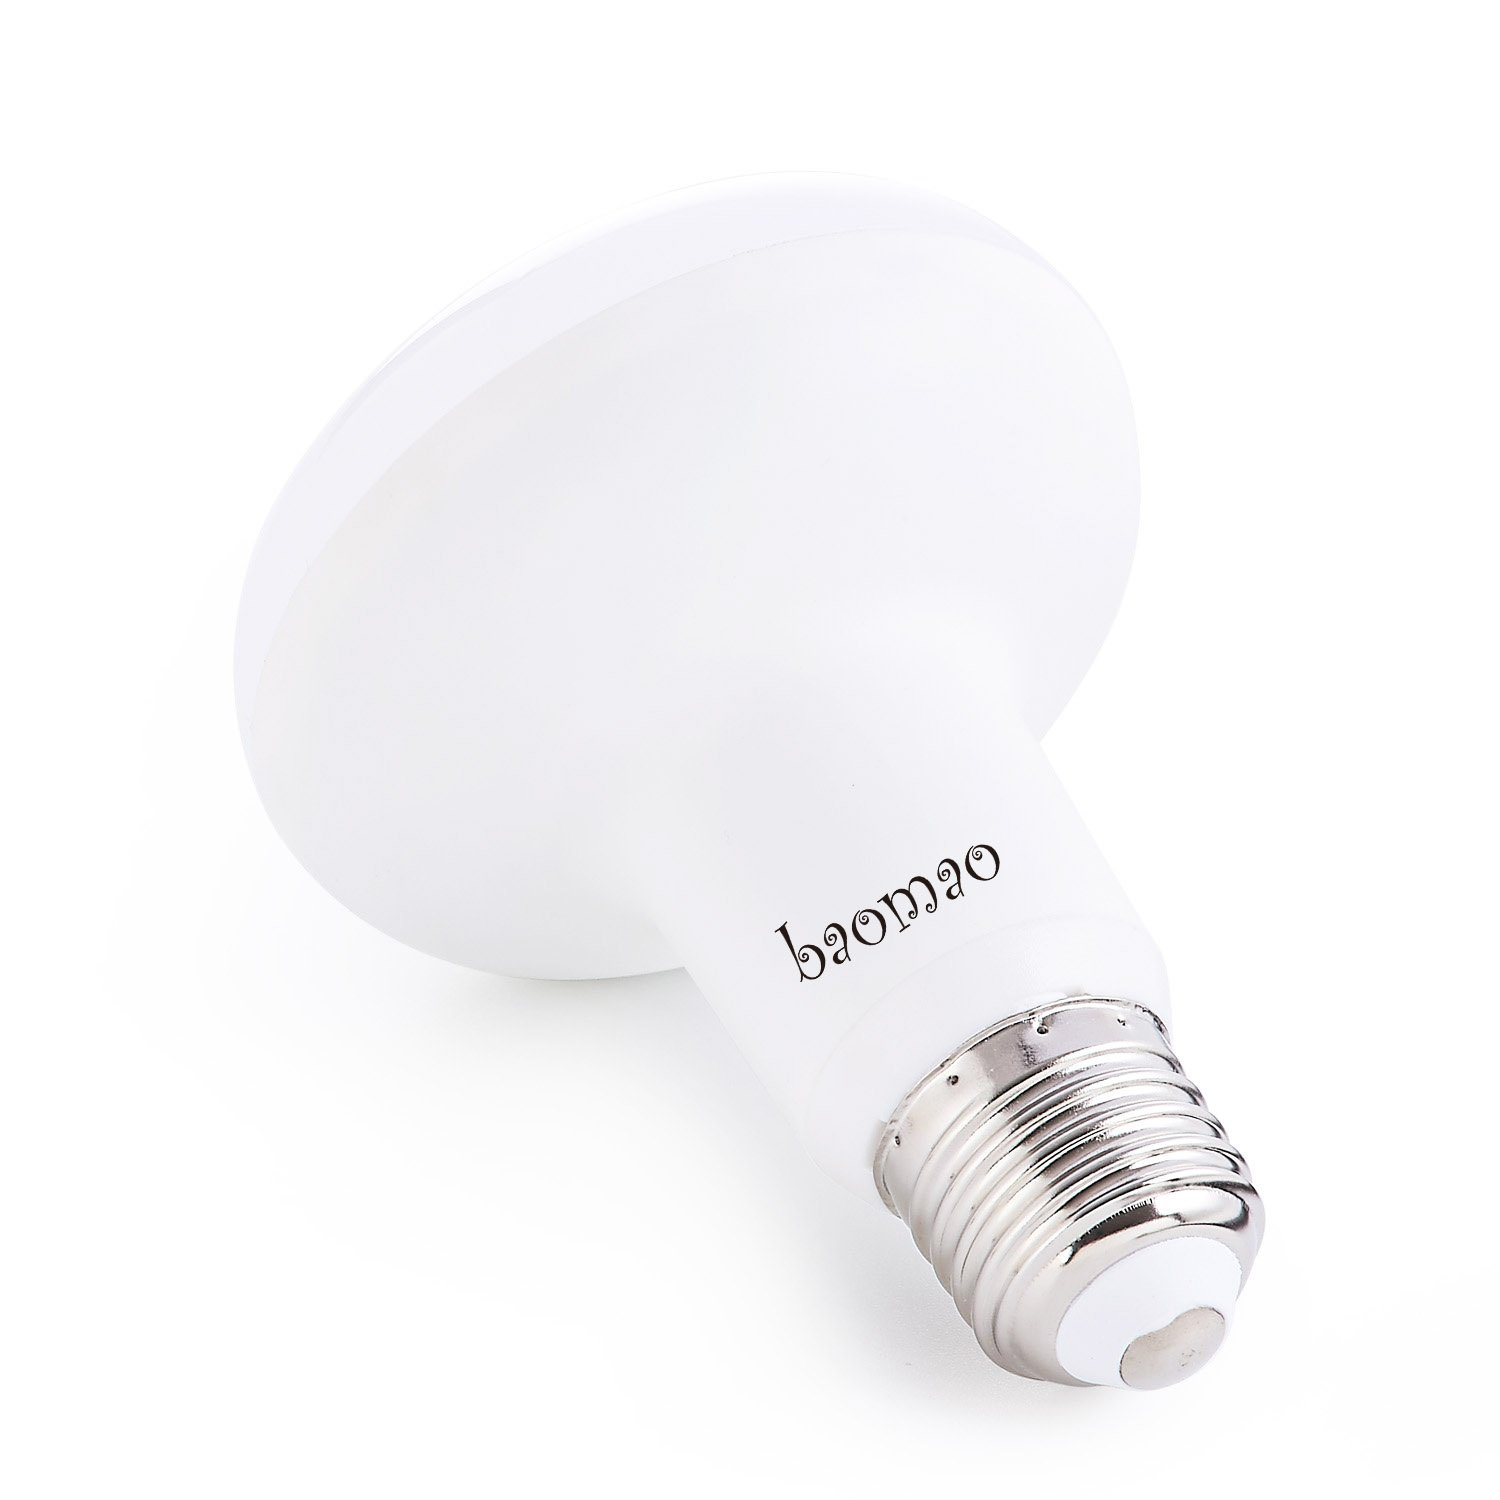 E26 base 75W Incandescent Bulbs Equivalent 9W R25 R80 BR25 LED bulb Cool White R25 Non-Dimmable LED flood Bulbs 900lm,5500K. Baomao 2PACK